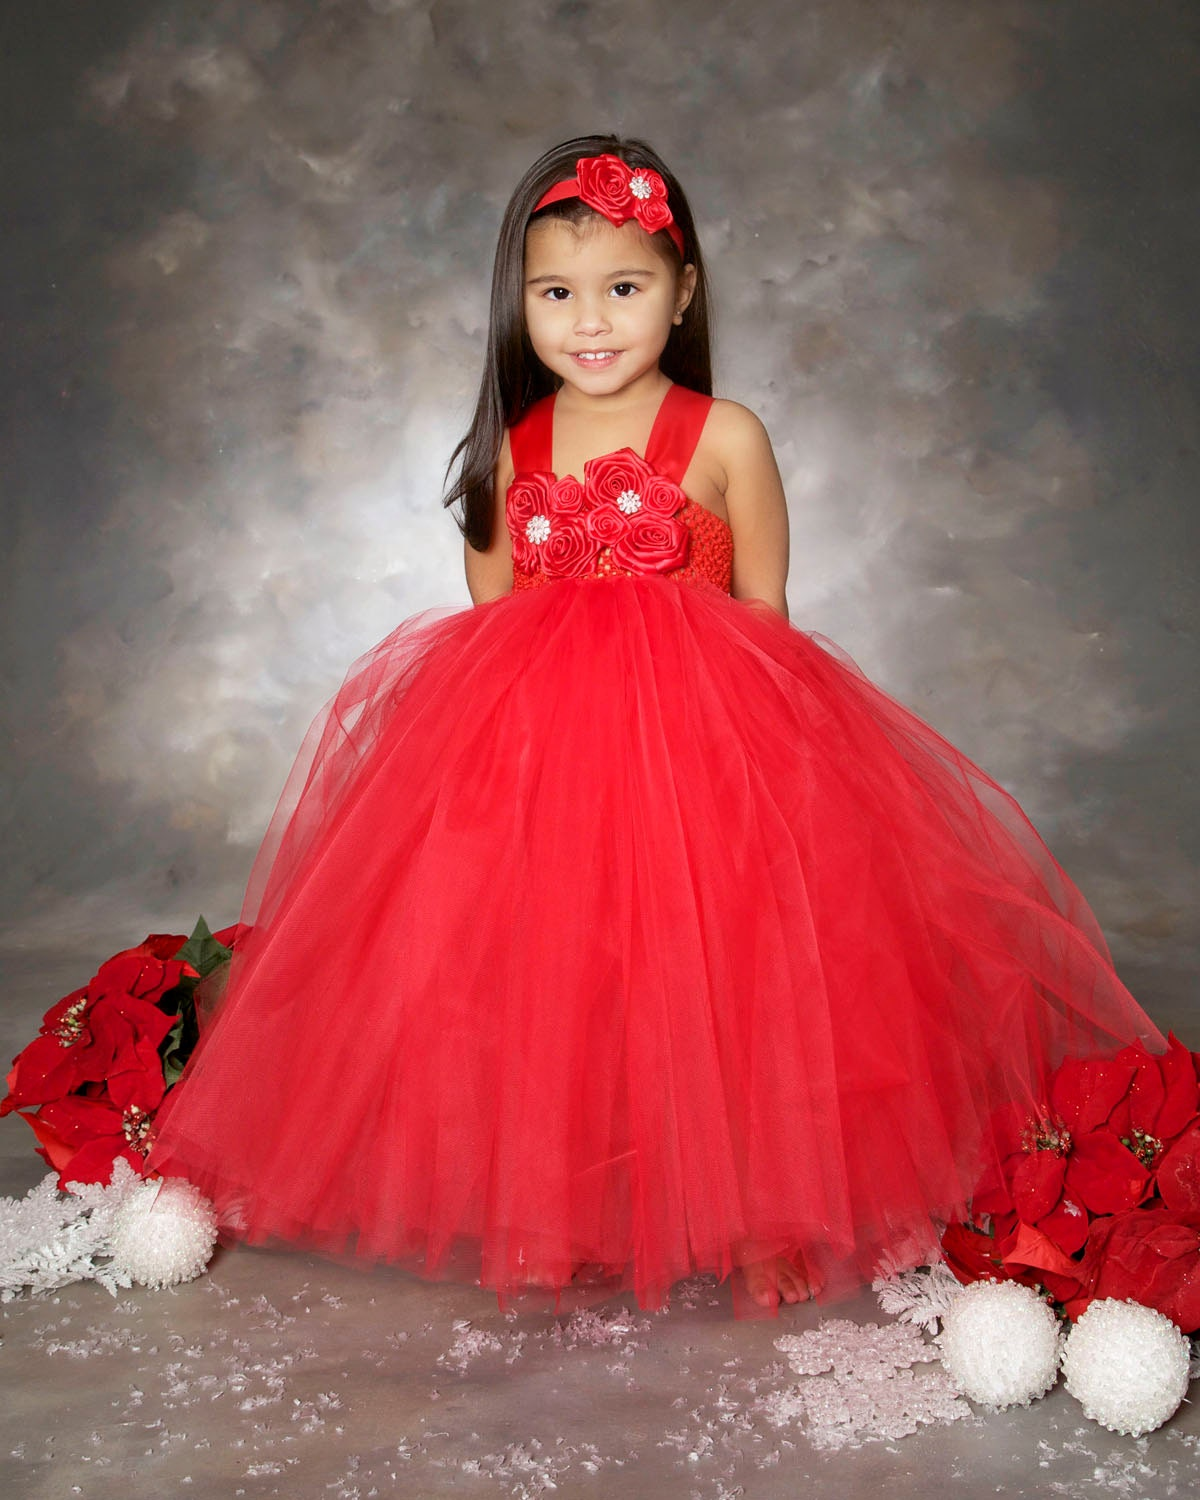 Red Flower Girl Dress Christmas Tutu Dress Holiday Outfit